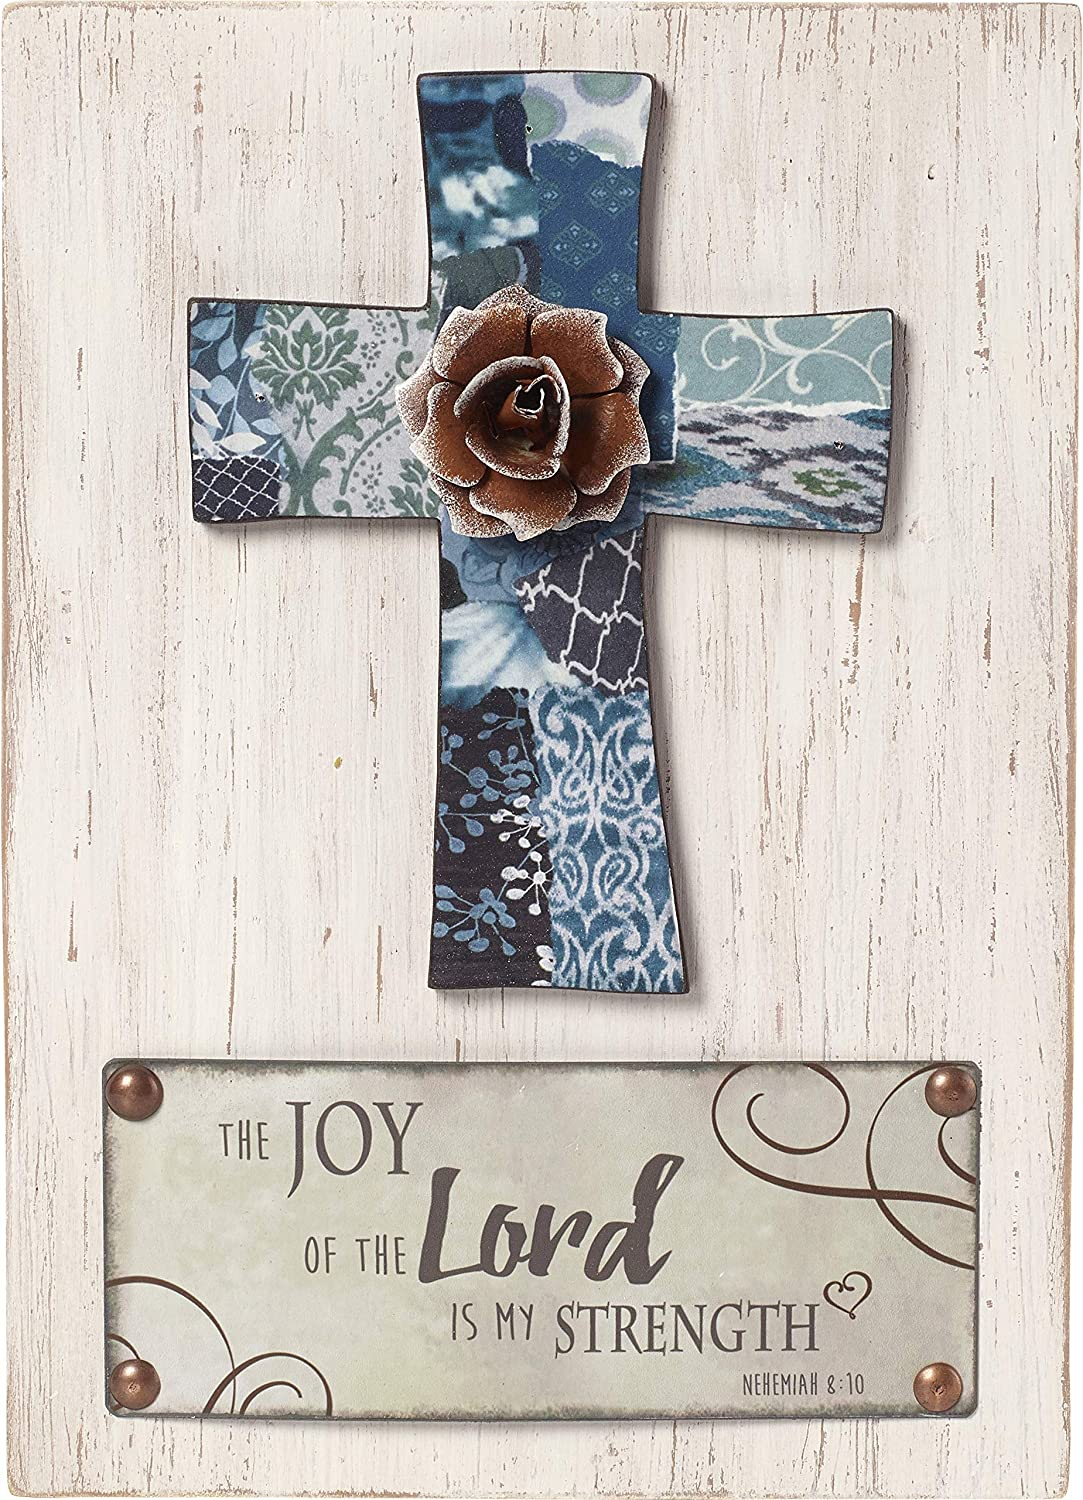 Precious Moments Farmhouse Decor The Joy Of The Lord Is My Strength Wood/Metal Wall Plaque 189913